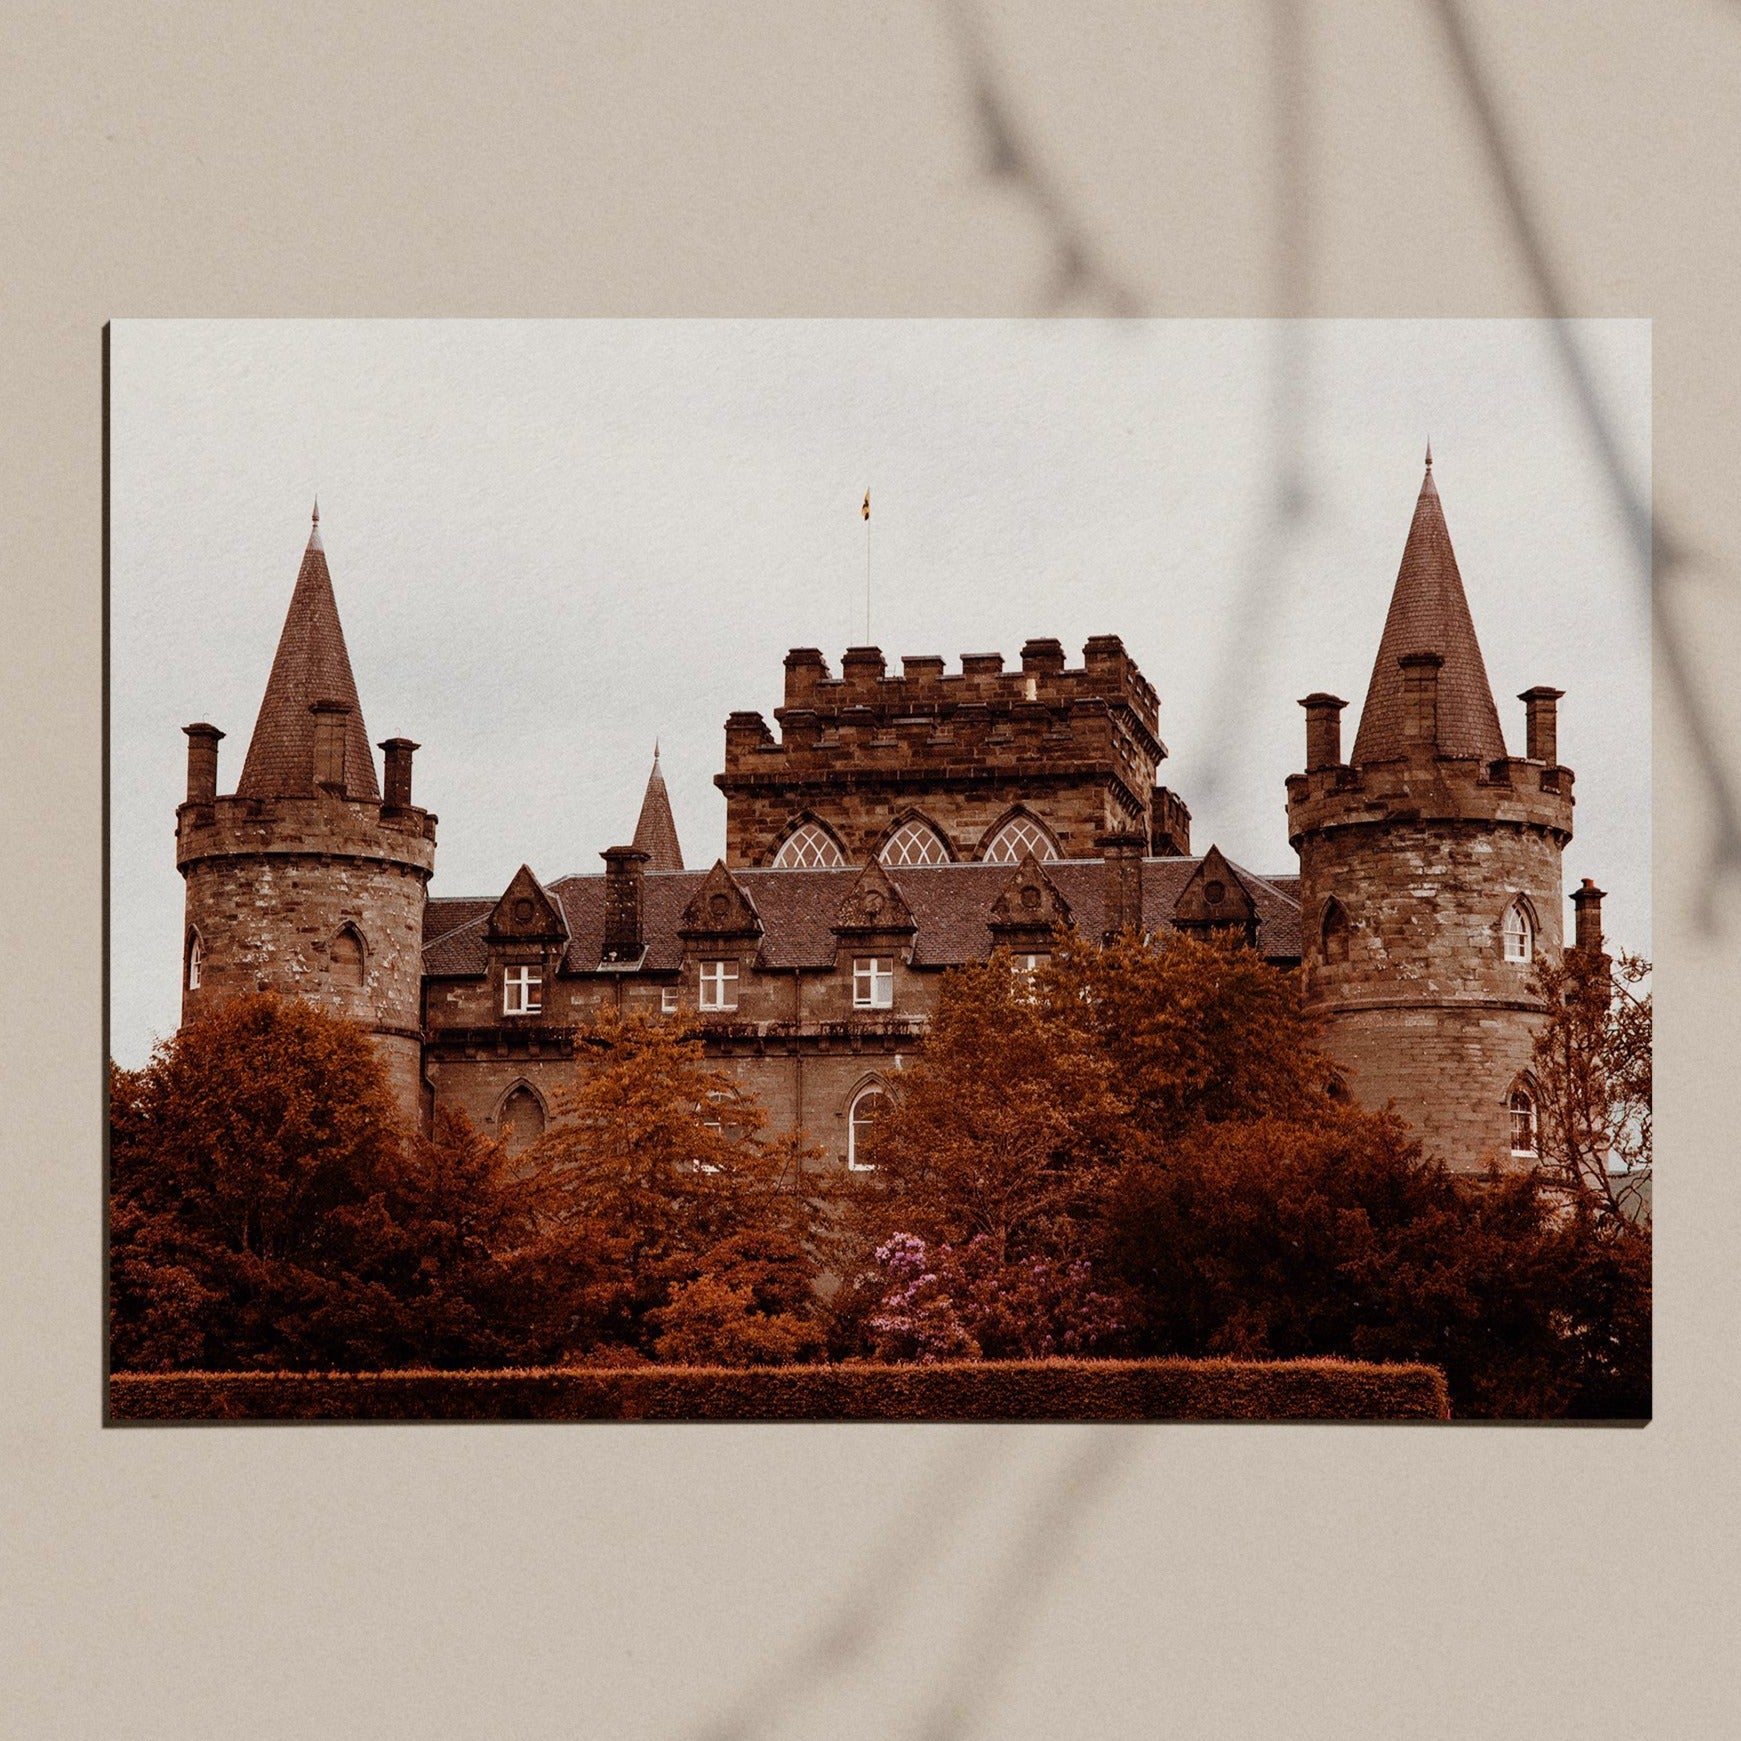 Castle I archival giclee print